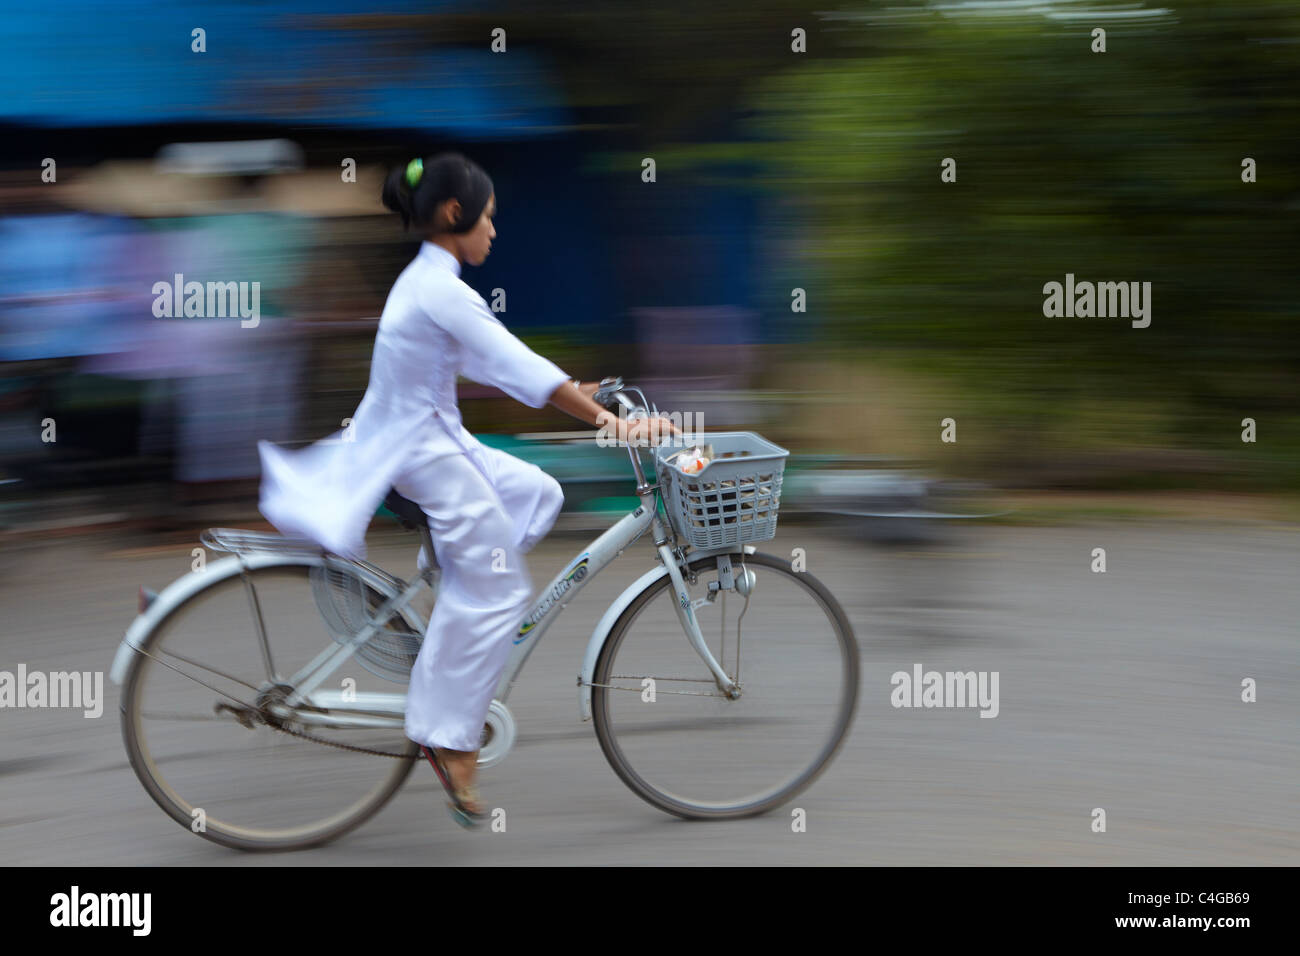 a girl in Ao Dai on a bike, Mekong Delta, Vietnam - Stock Image